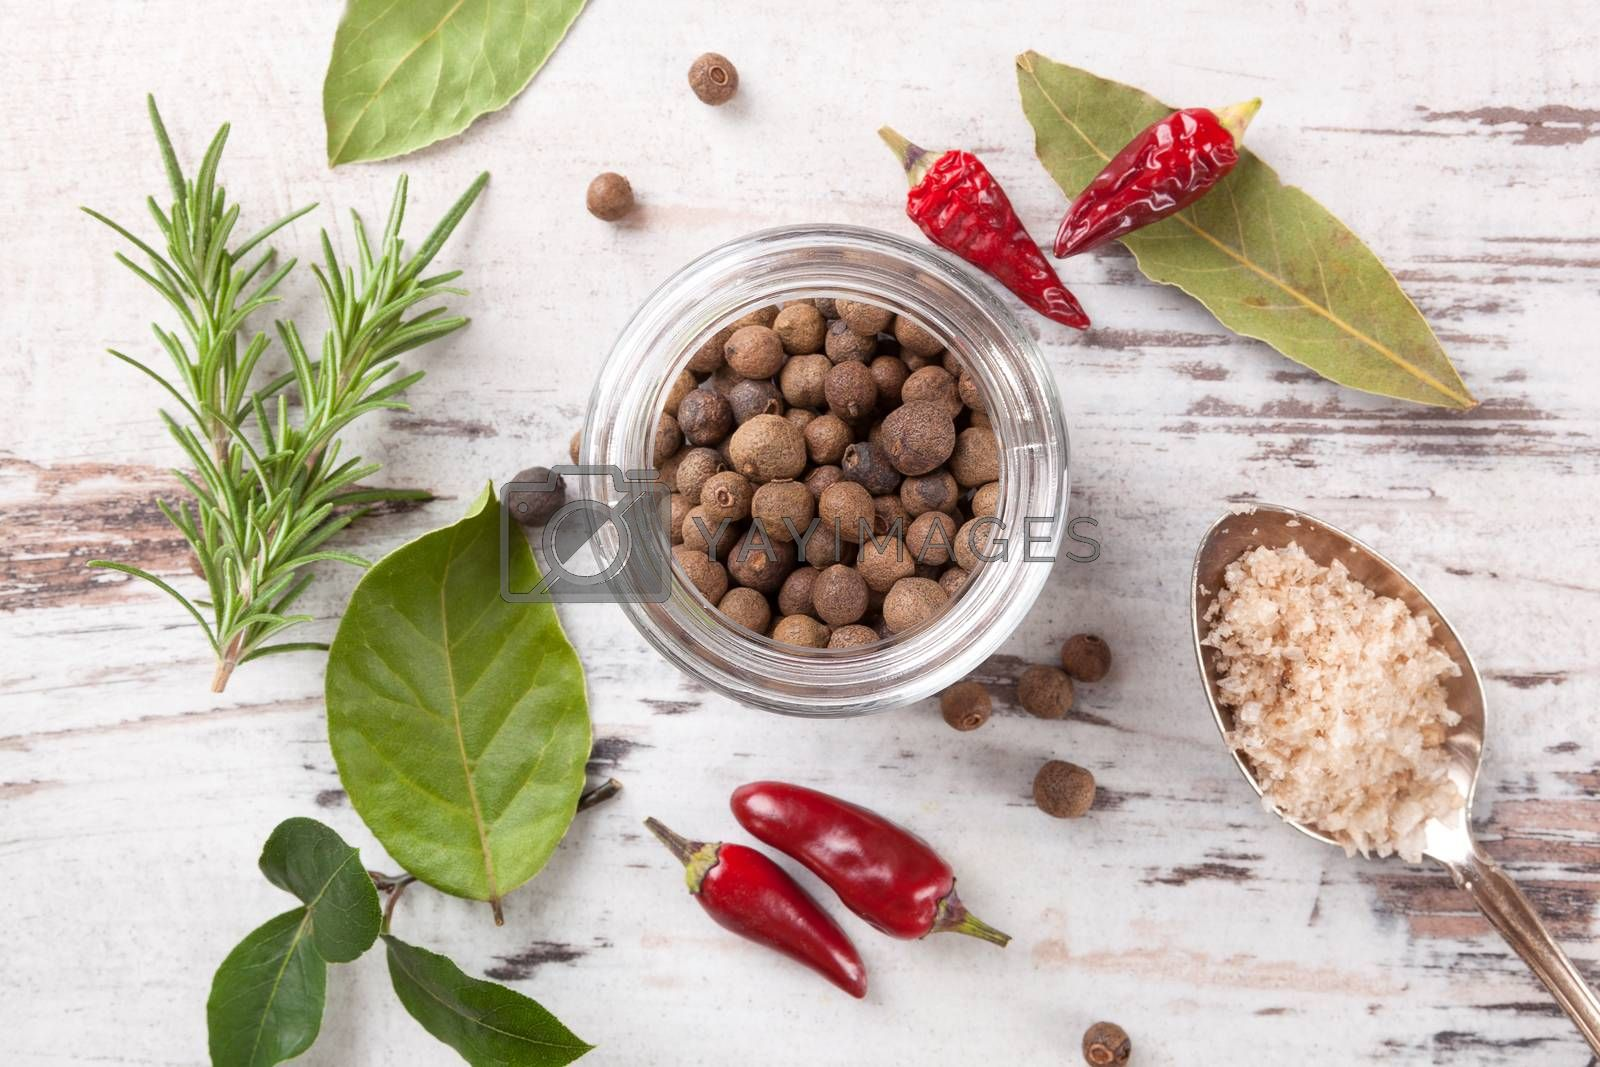 Traditional spice and condiment on white wooden background. Bay leaves, rosemary, chillies and black pepper on wooden table, top view.